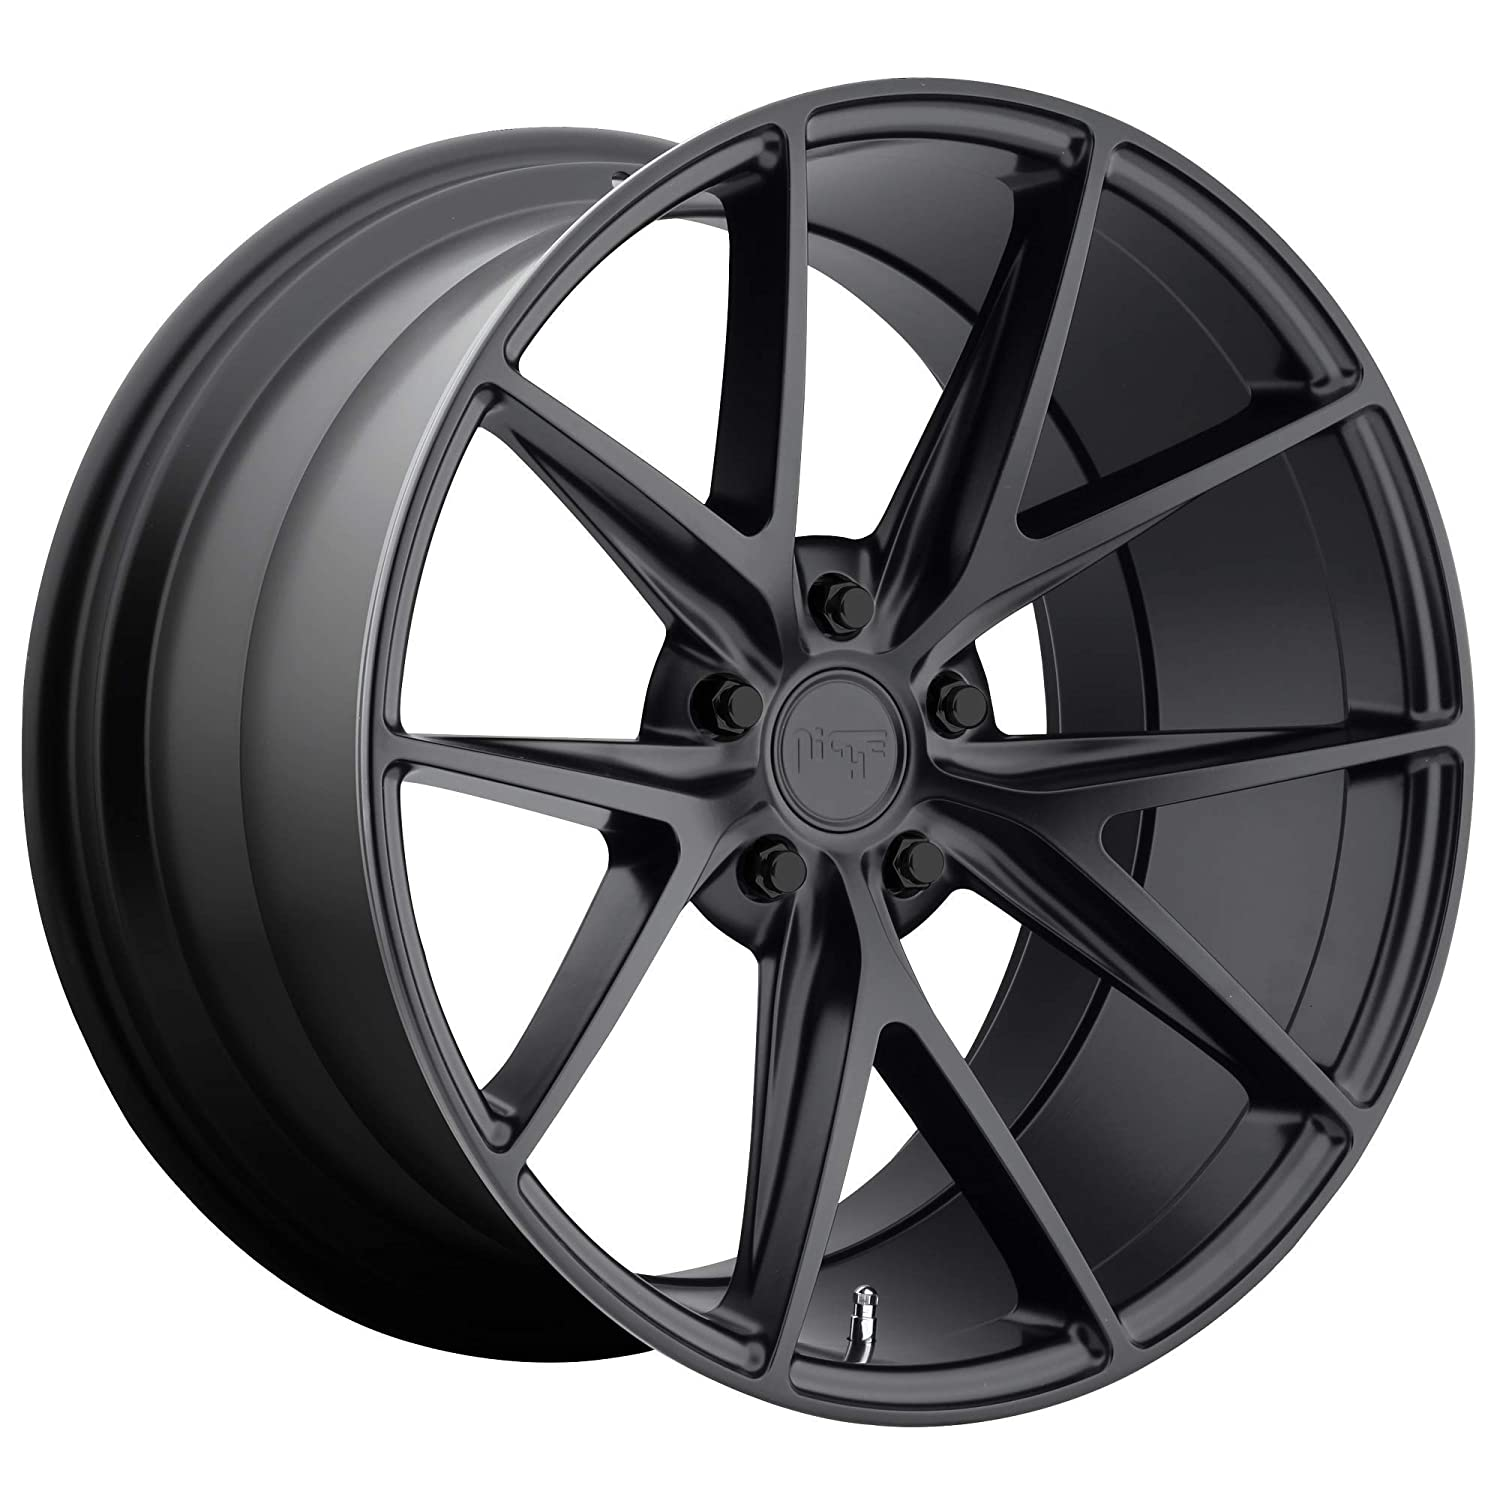 Niche M117 Misano 18x8 5x114.3 +40mm Satin Black Wheel Rim